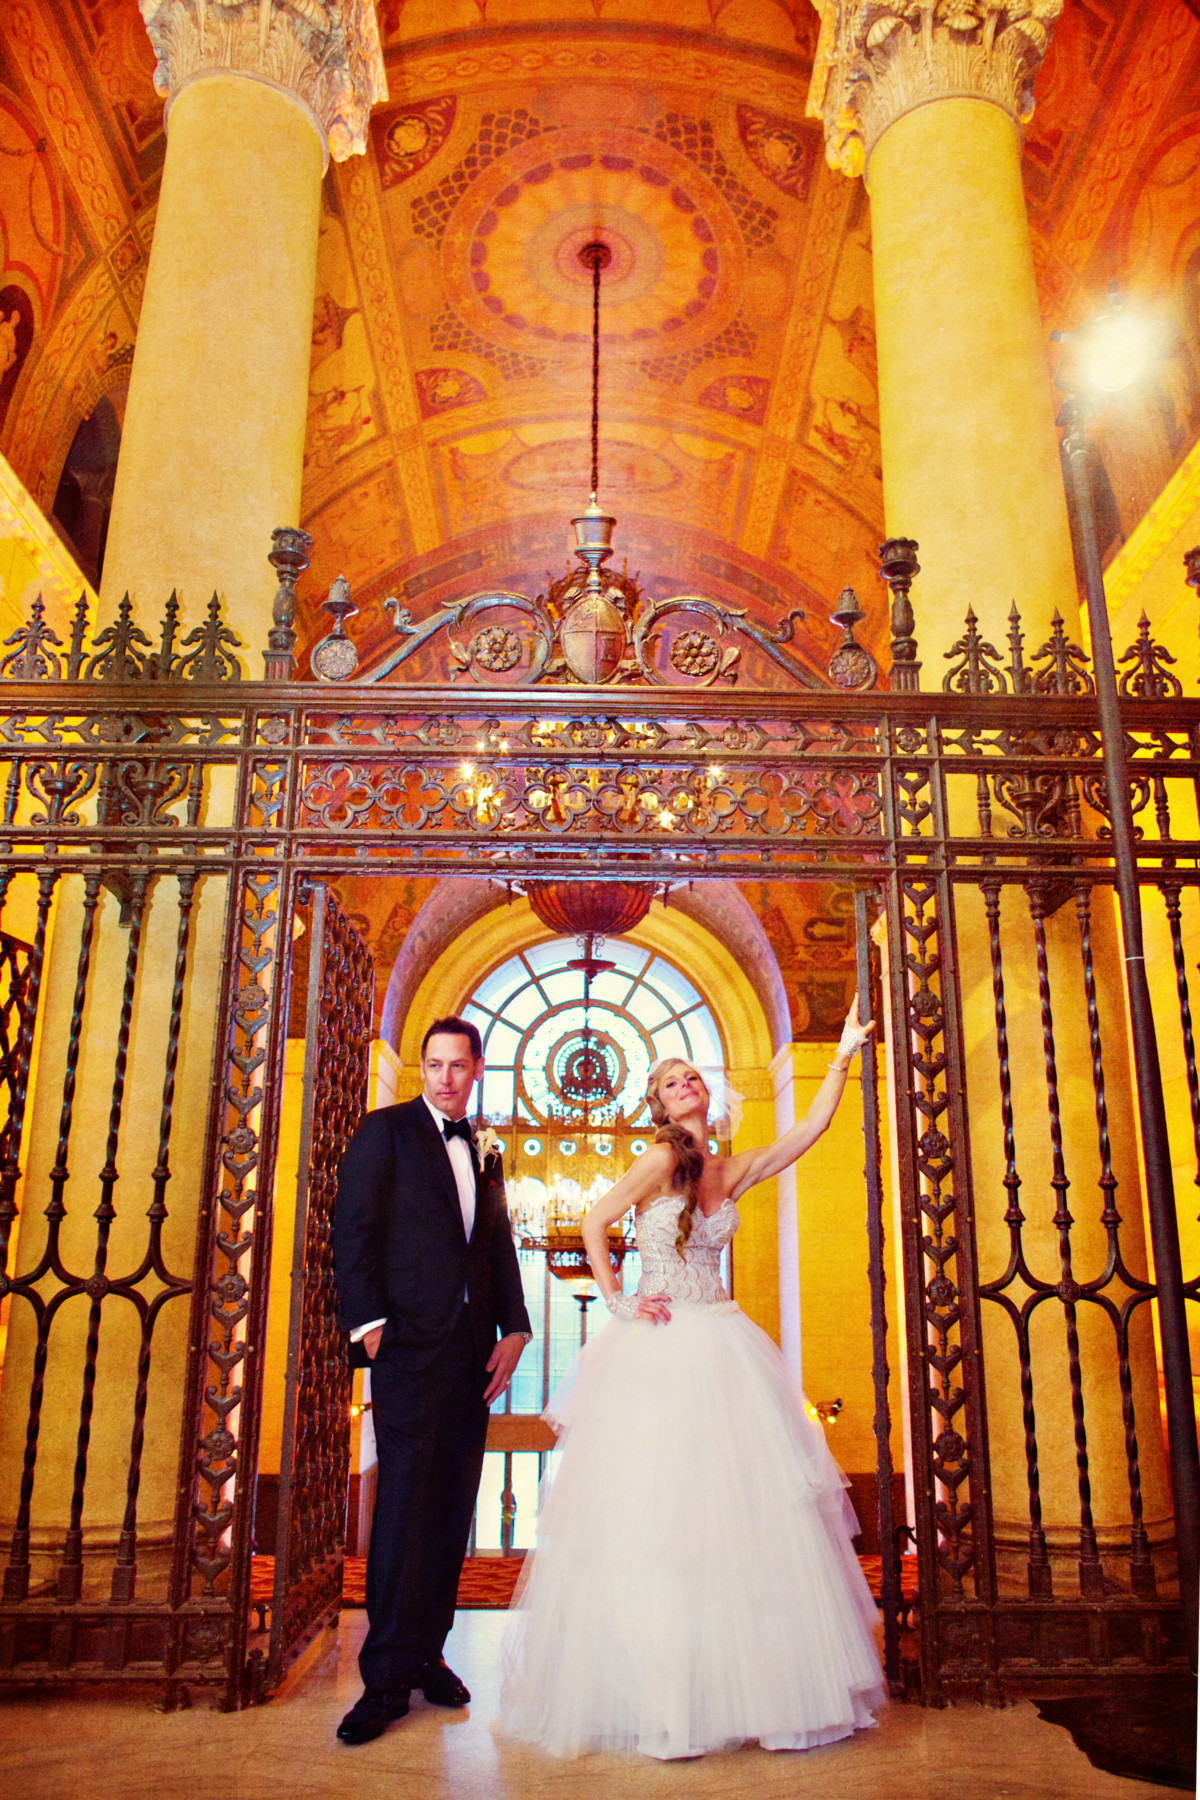 Event Planning Services Los Angeles